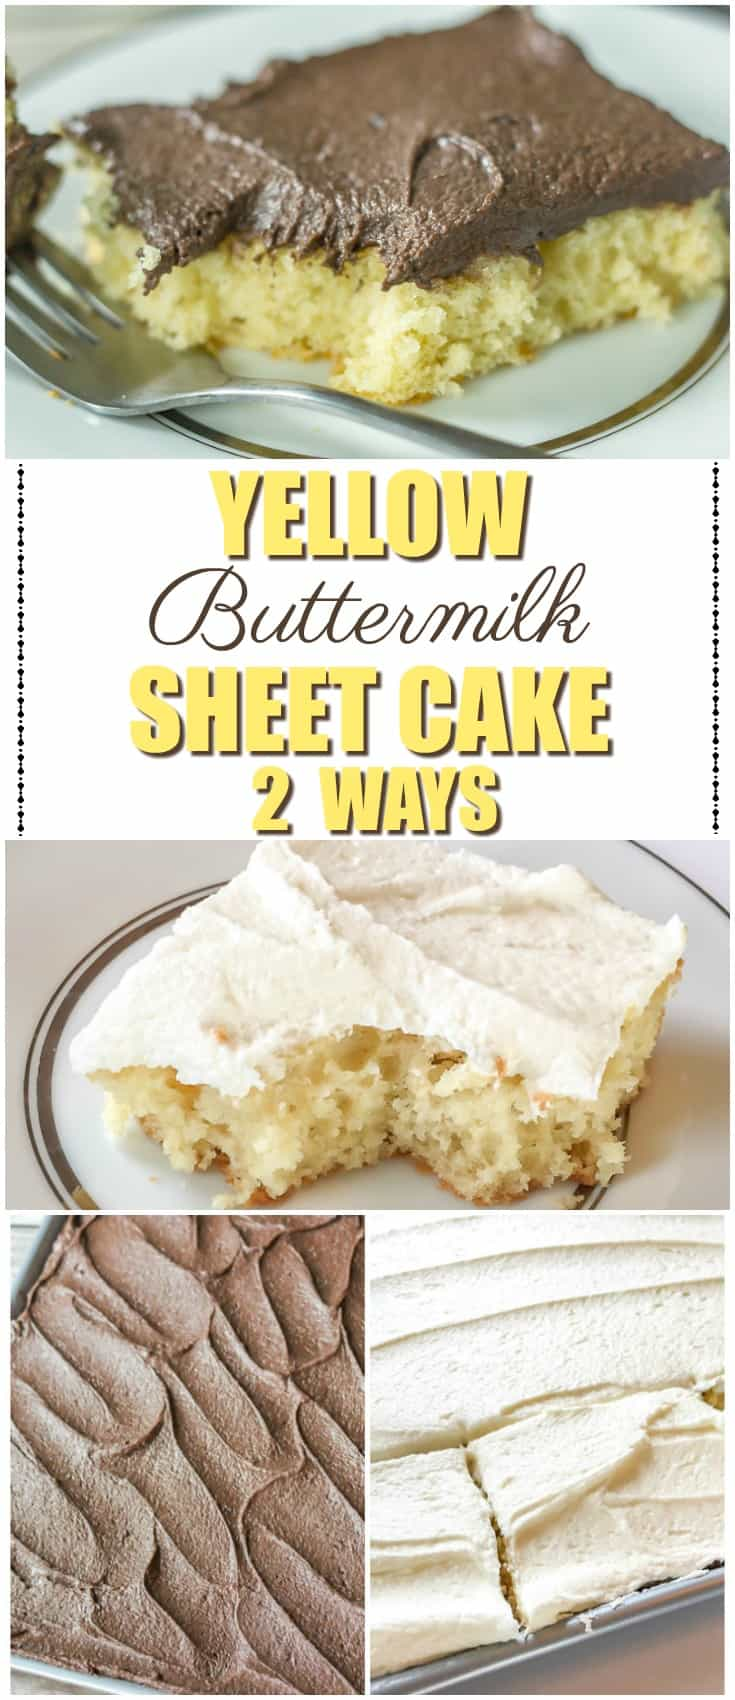 Yellow Buttermilk Sheet Cake 2 Ways